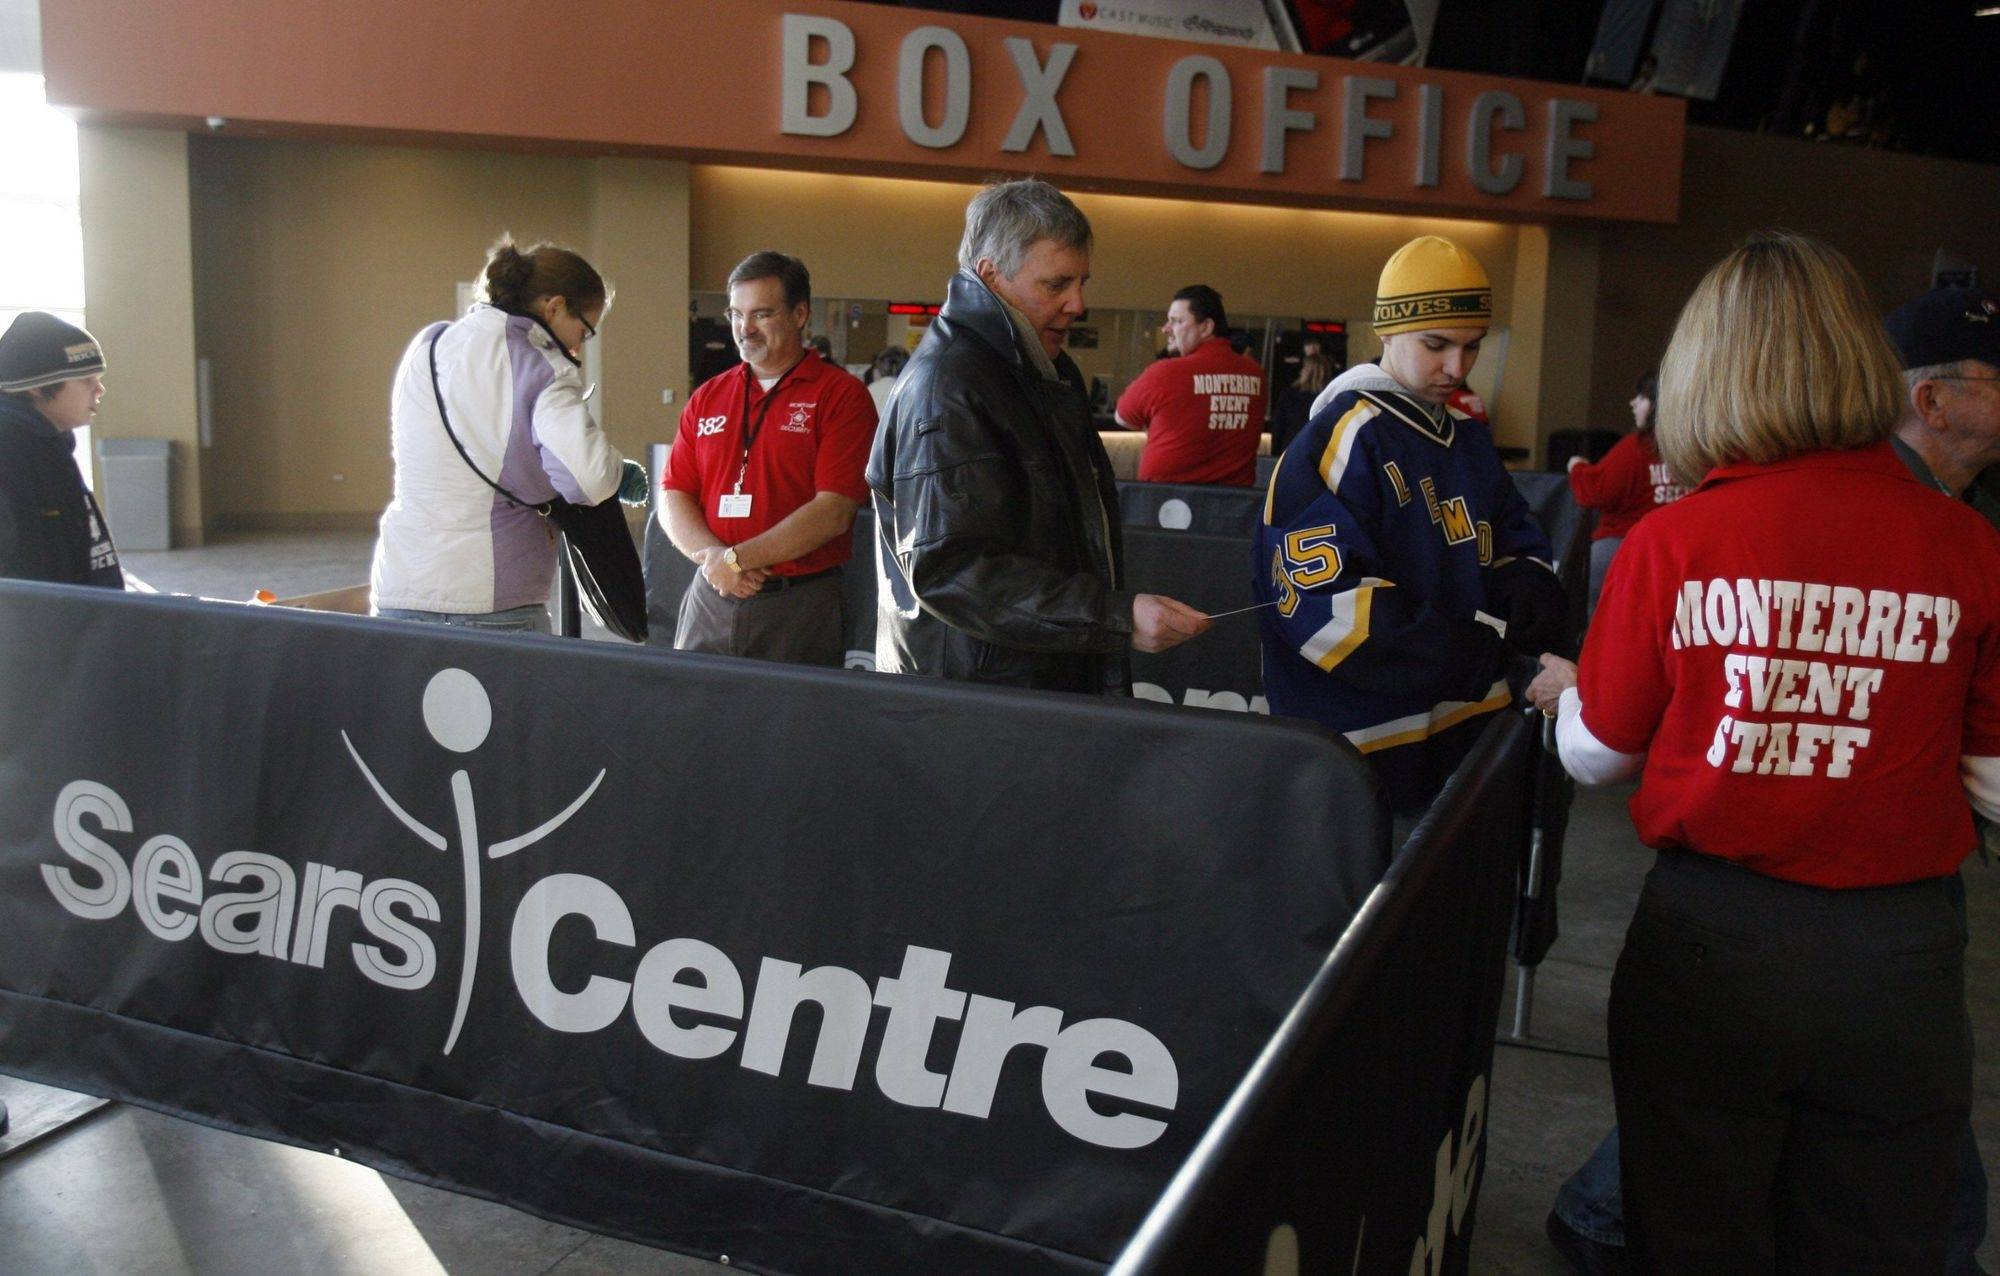 Marilyn Tuckman, an usher, right, checks tickets and gives directions to seating in the Sears Centre Arena for a hockey tournament last weekend, the first event at the Sears Centre under the new manager Global Spectrum.